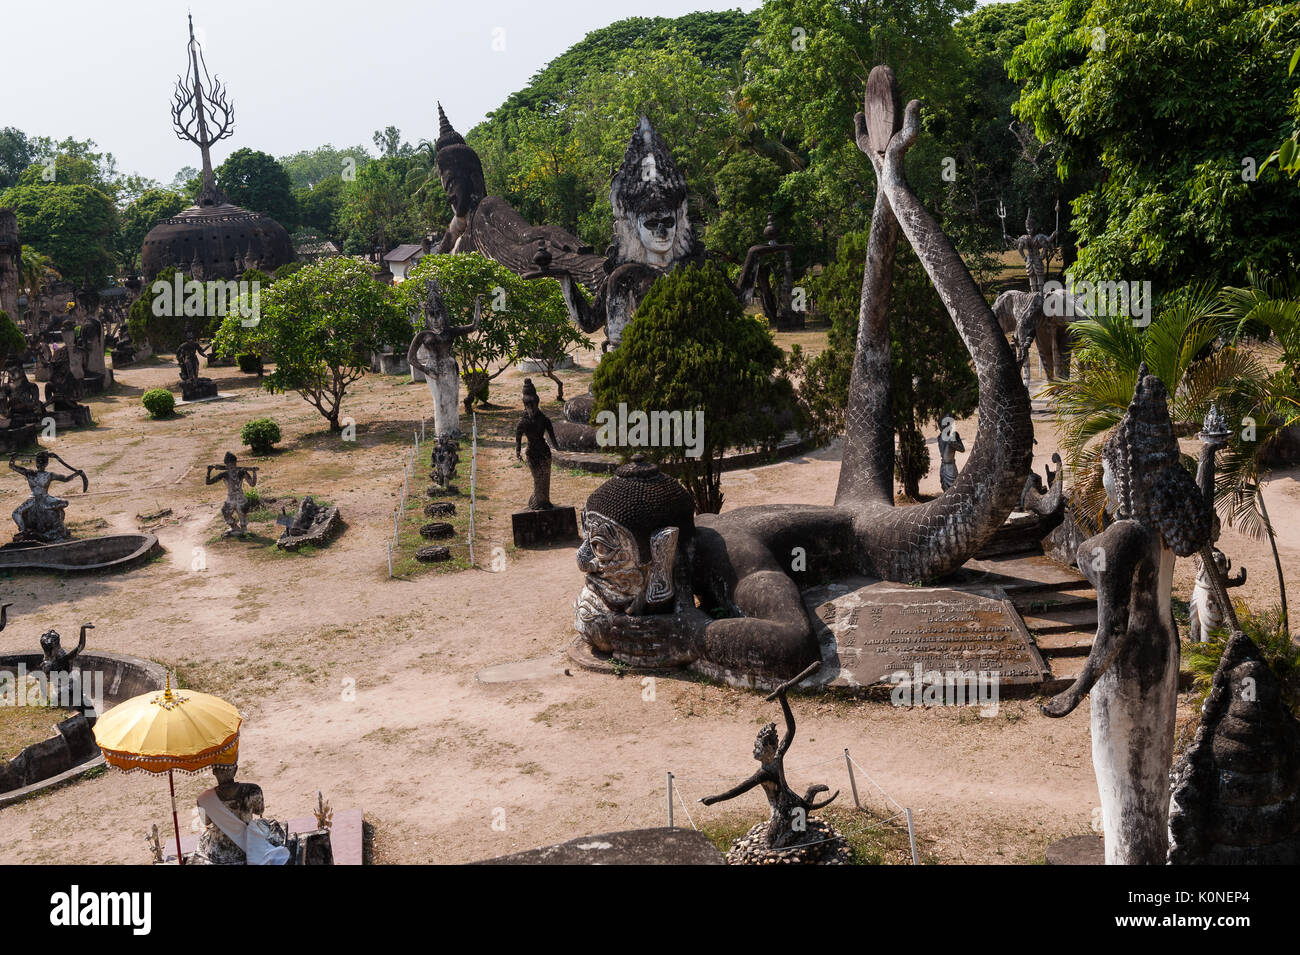 Buddha Park outside Vientiane contains over 200 sculptures depicting Hindu and Buddhist deities. - Stock Image